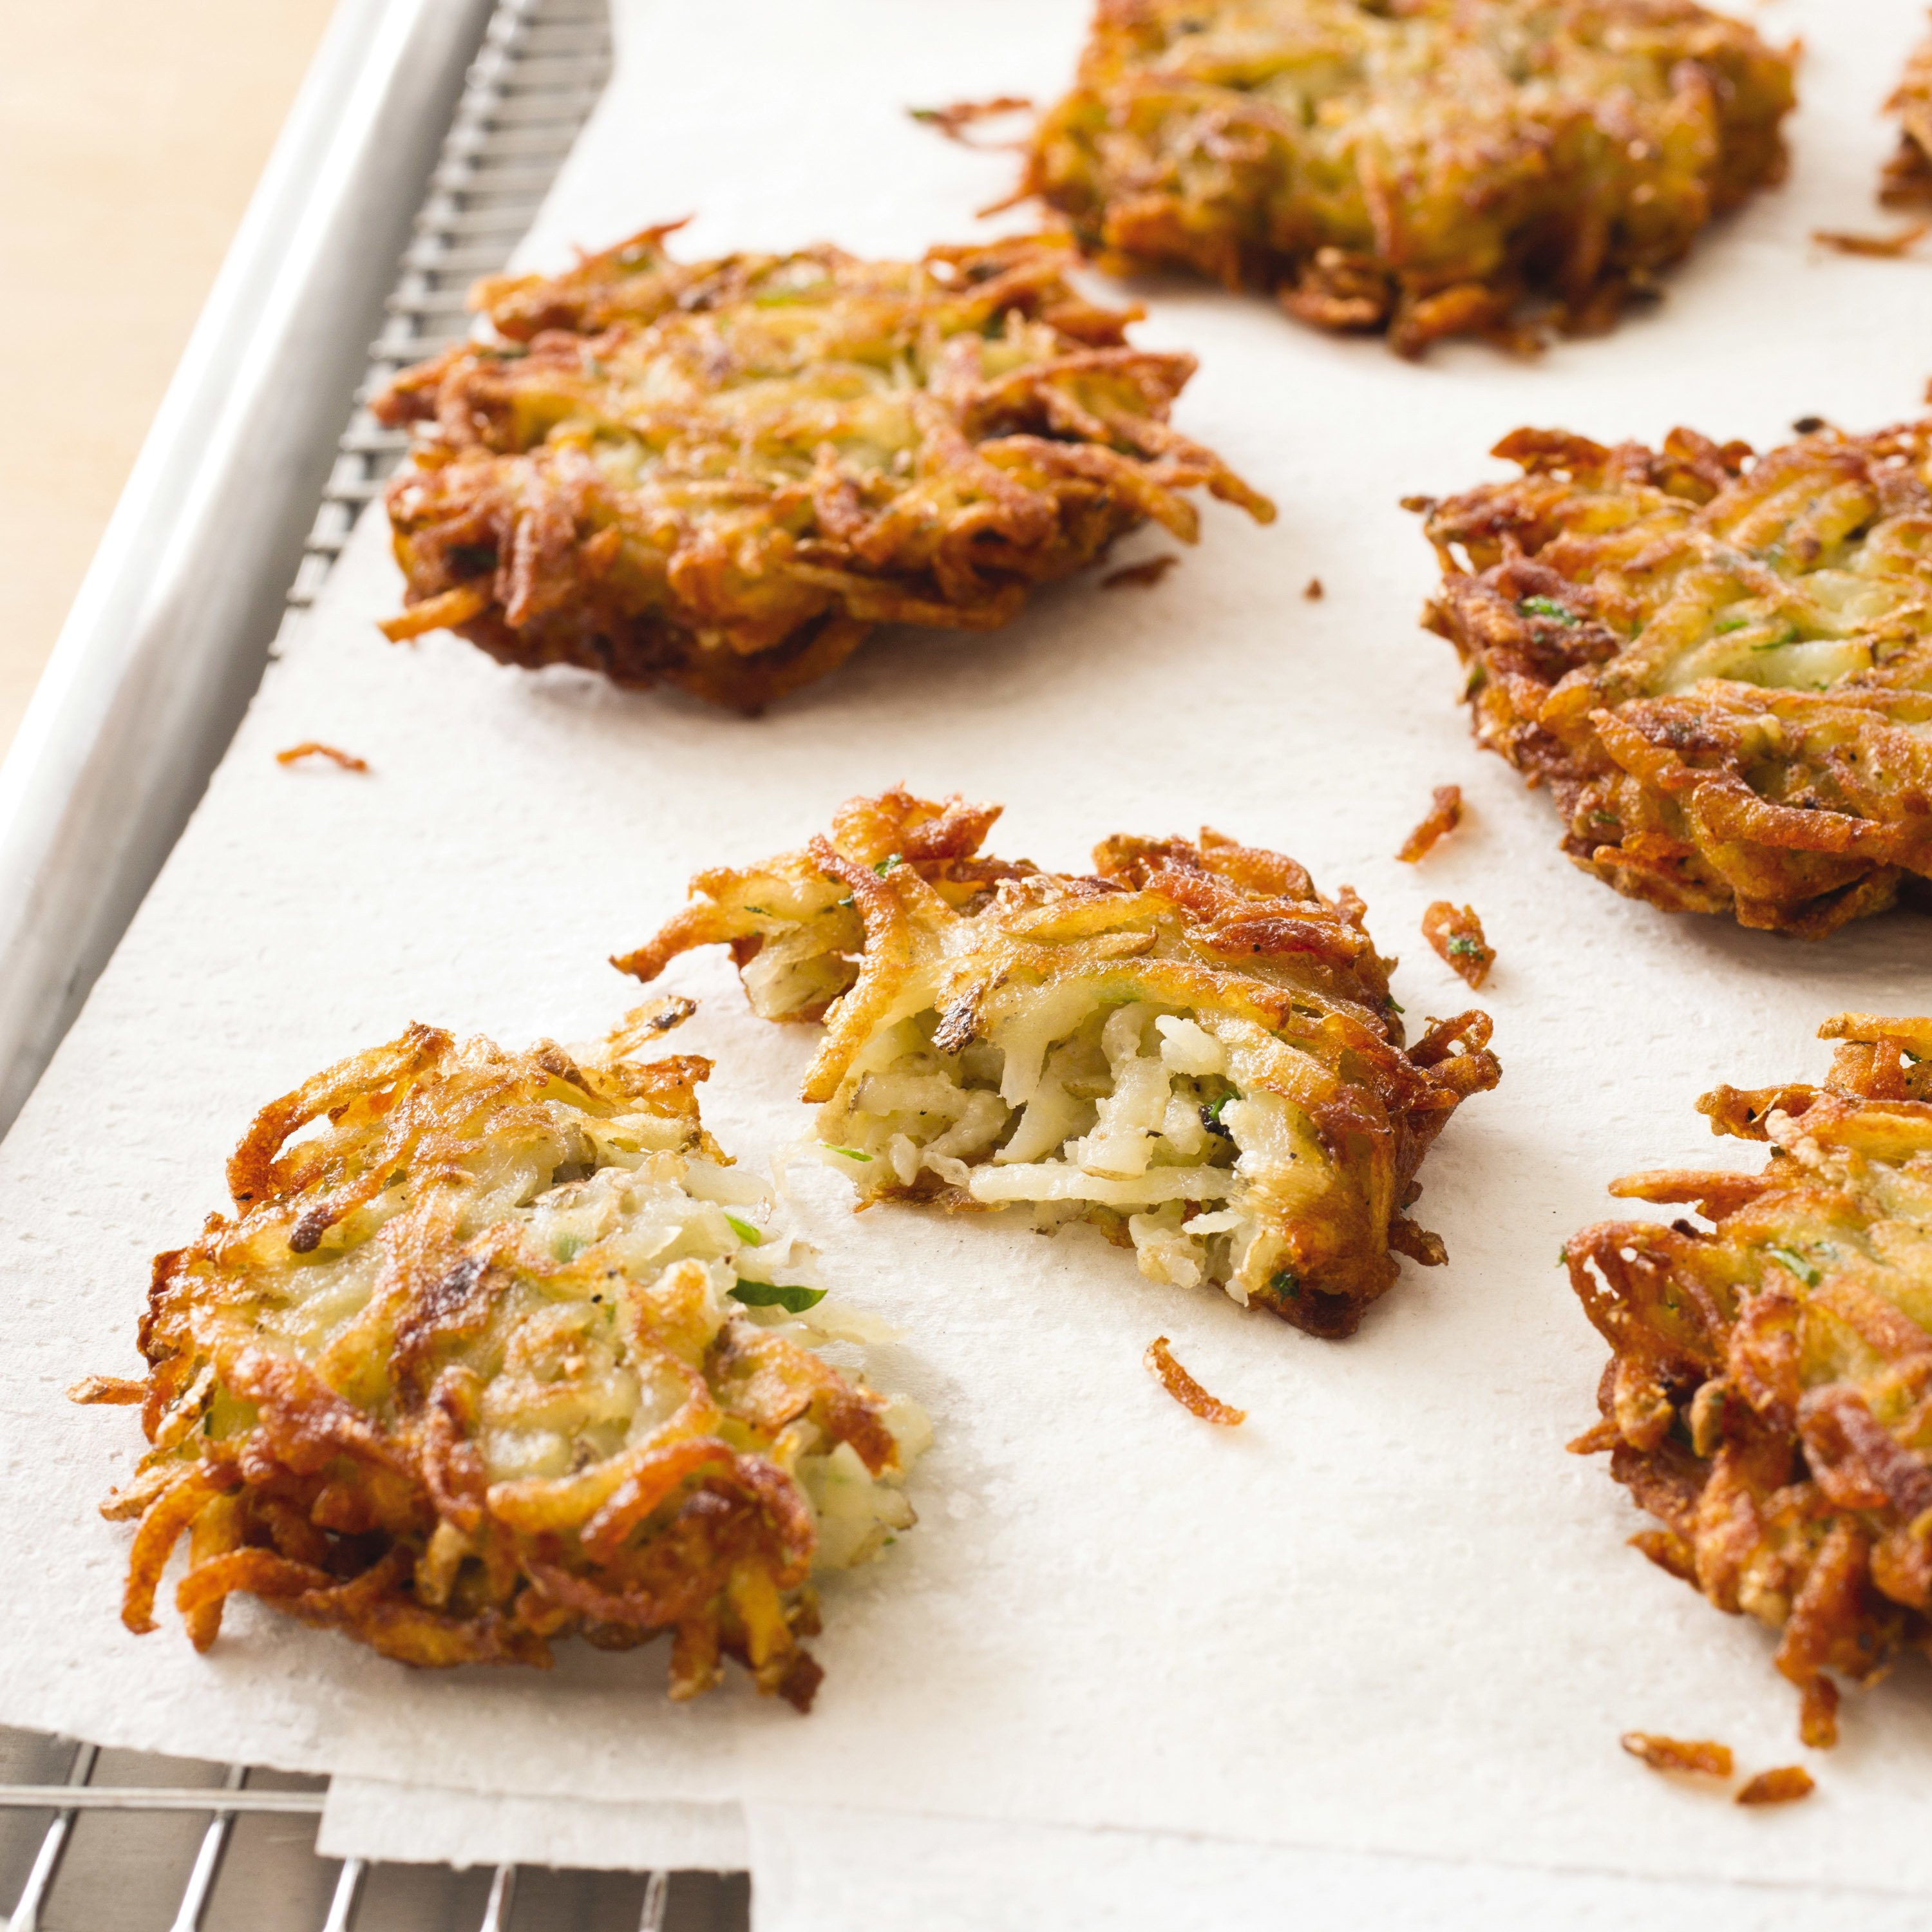 Crispy potato pancakes are the perfect base for toppings